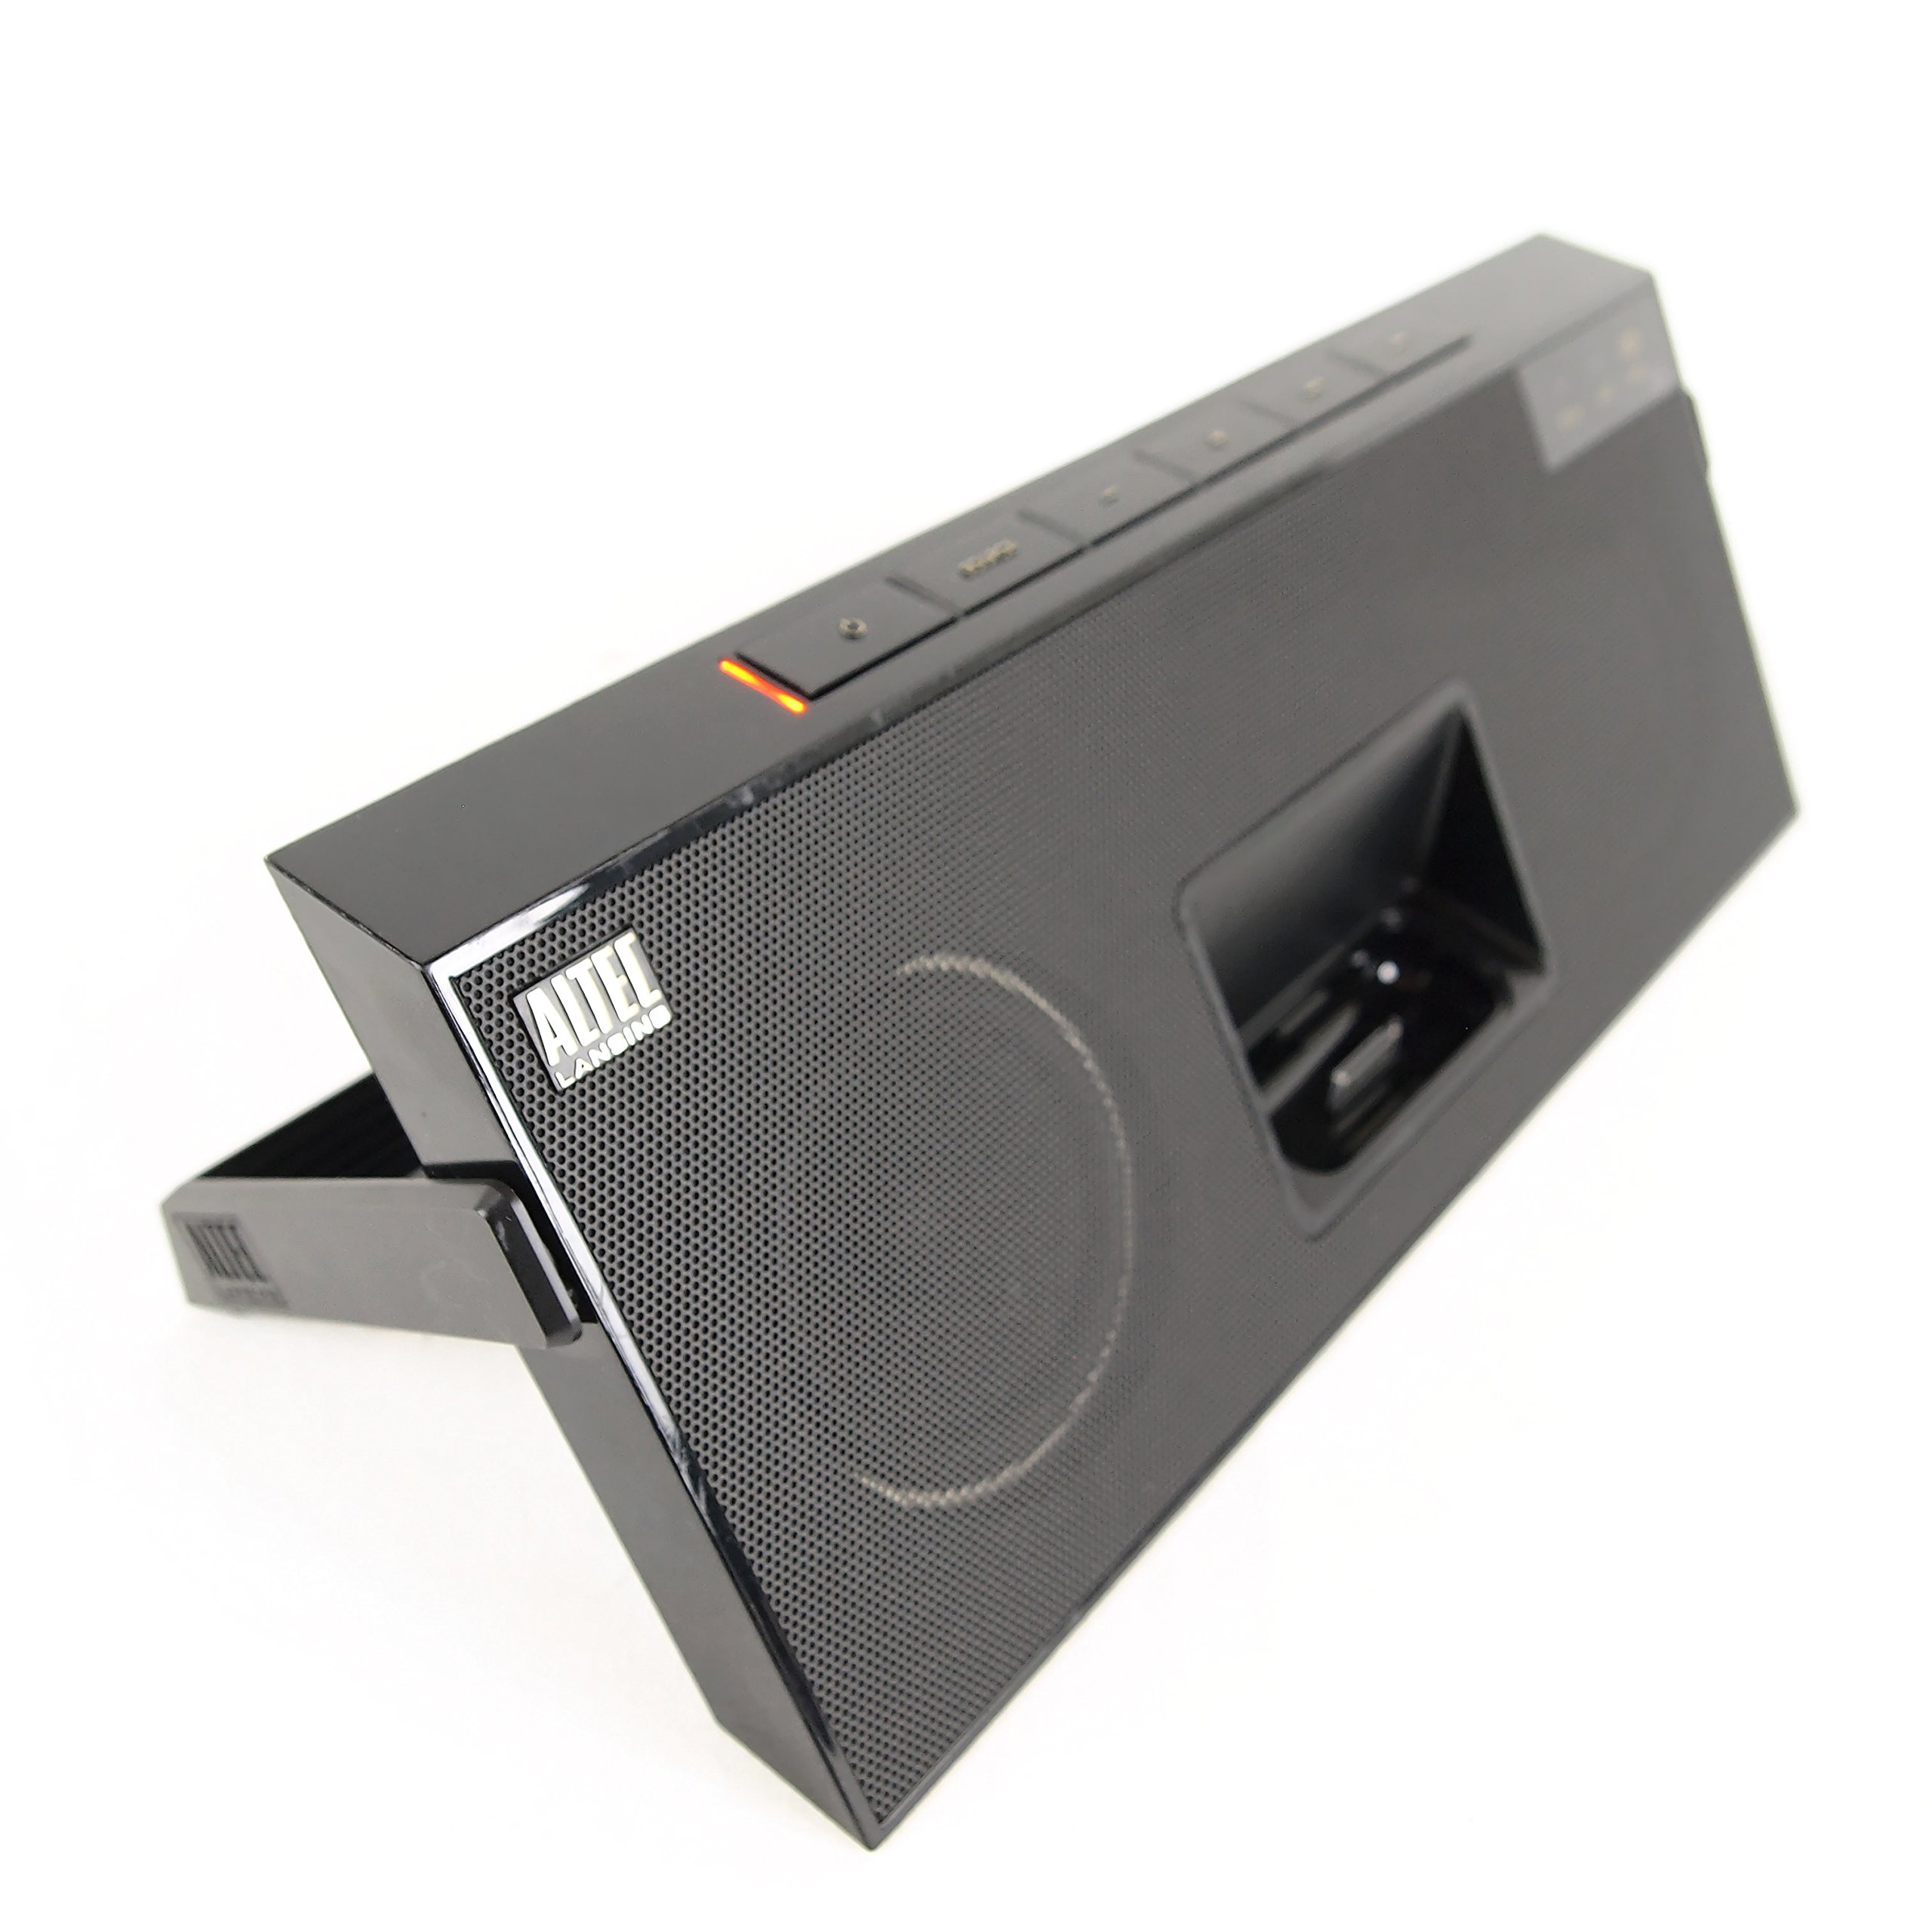 Altec Lansing IMT520BLK inMotion Kick Speaker for Apple® iPod® and iPhone® by ALTEC LANSING (Image #2)